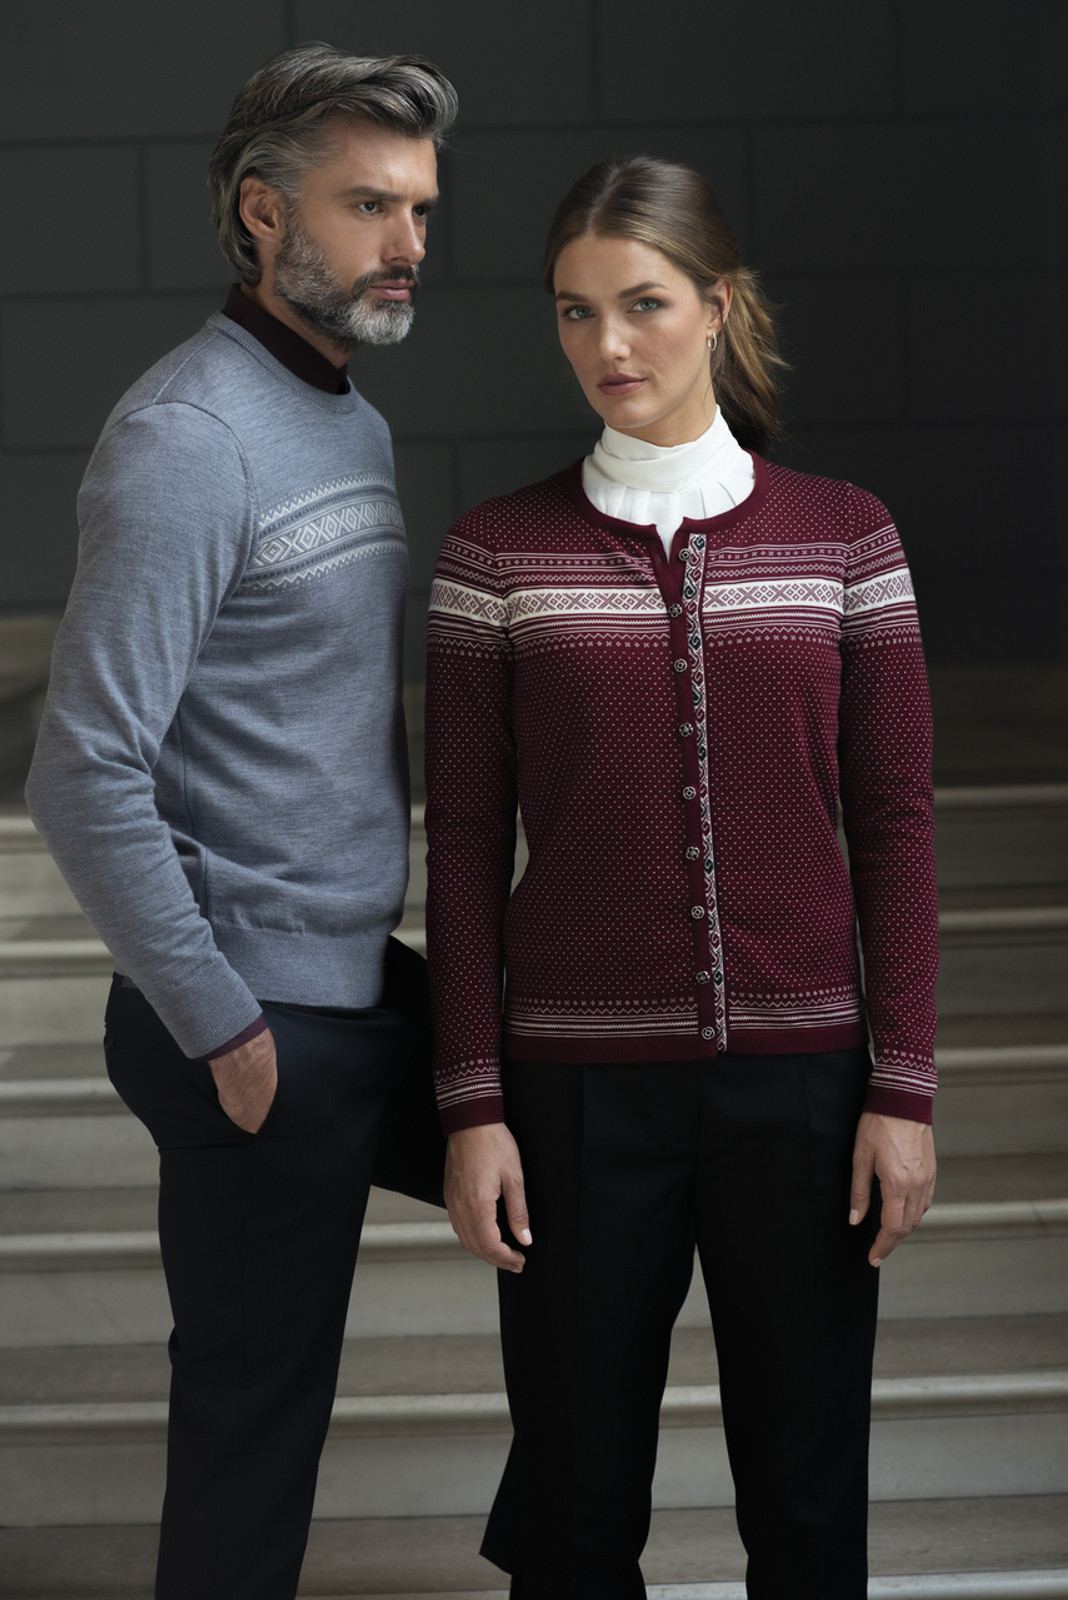 Man wearing Dale of Norway Sverre Sweater in Smoke/Off White/Dark Charcoal, 93031-T and woman wearing Dale of Norway Hedda Cardigan, Ladies in Ruby Melange/Off White/Dark Charcoal, 83401-V